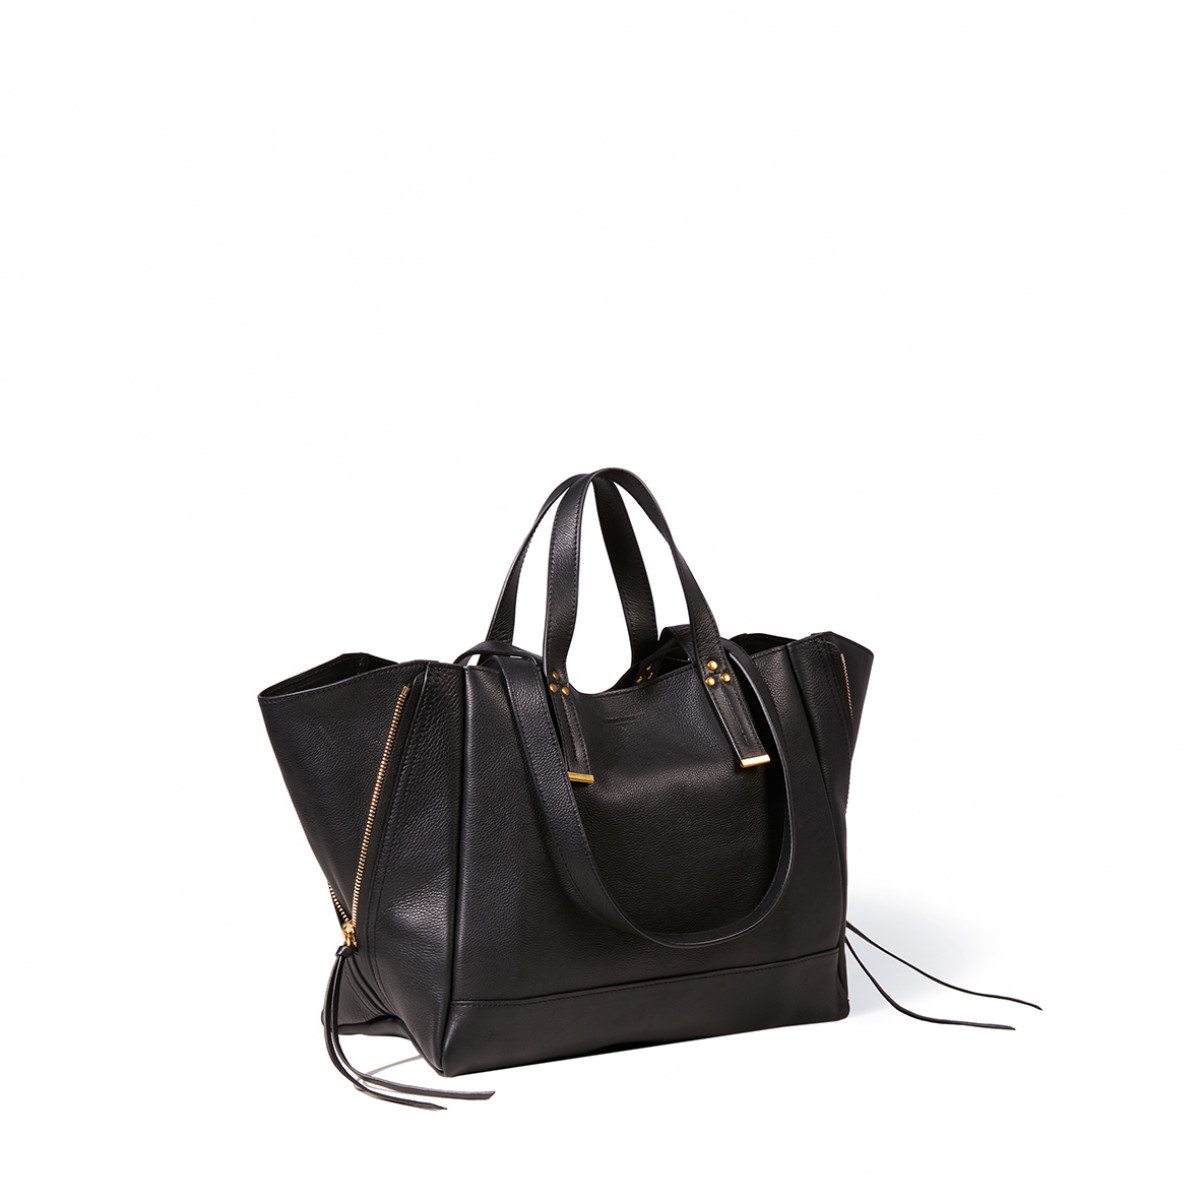 shop jerome dreyfuss bags